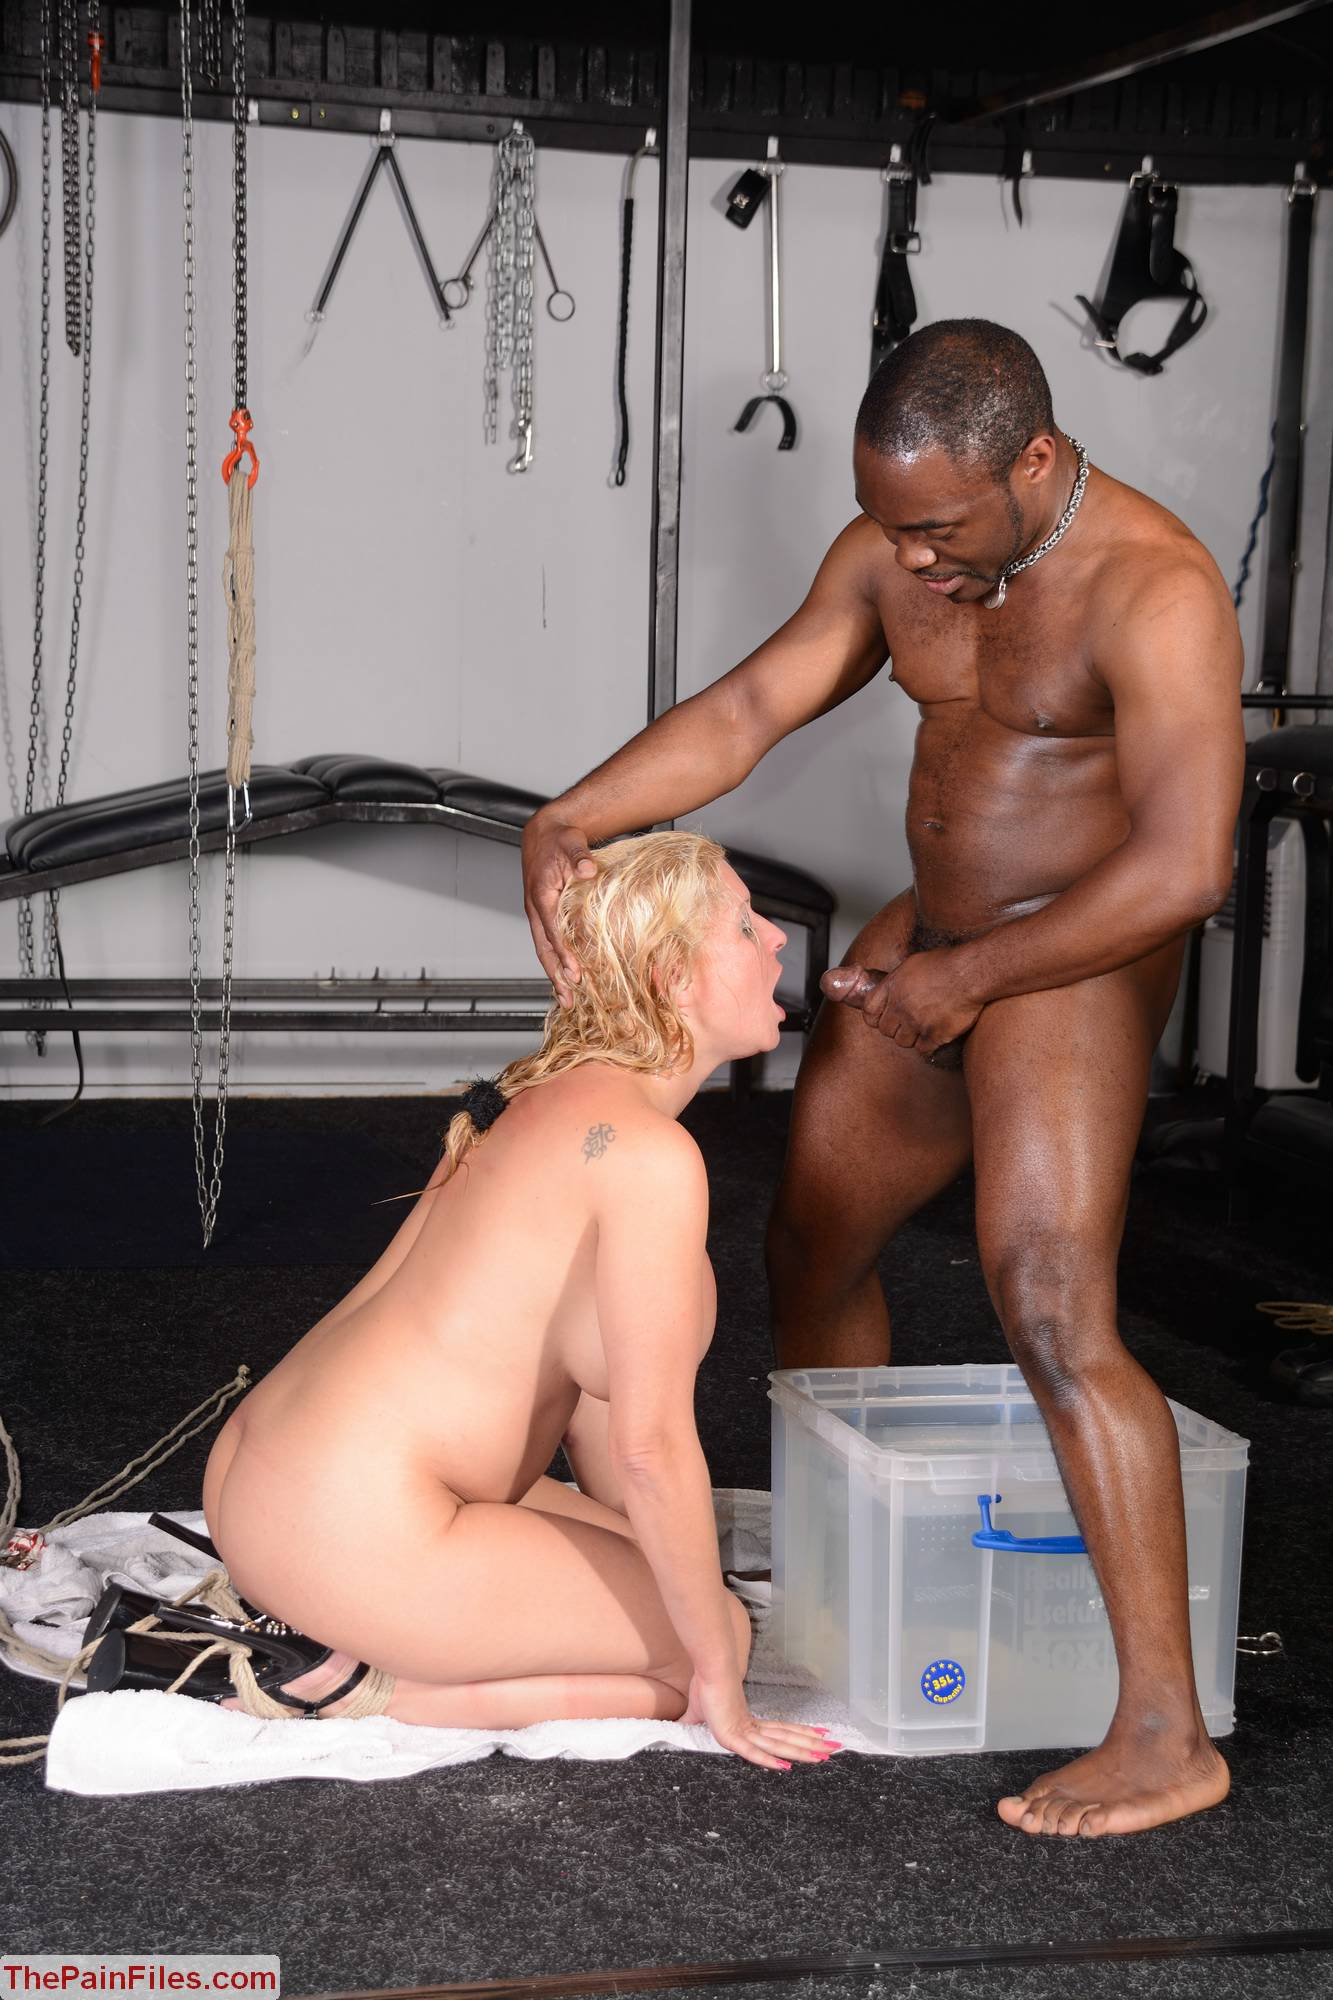 Interracial Bdsm